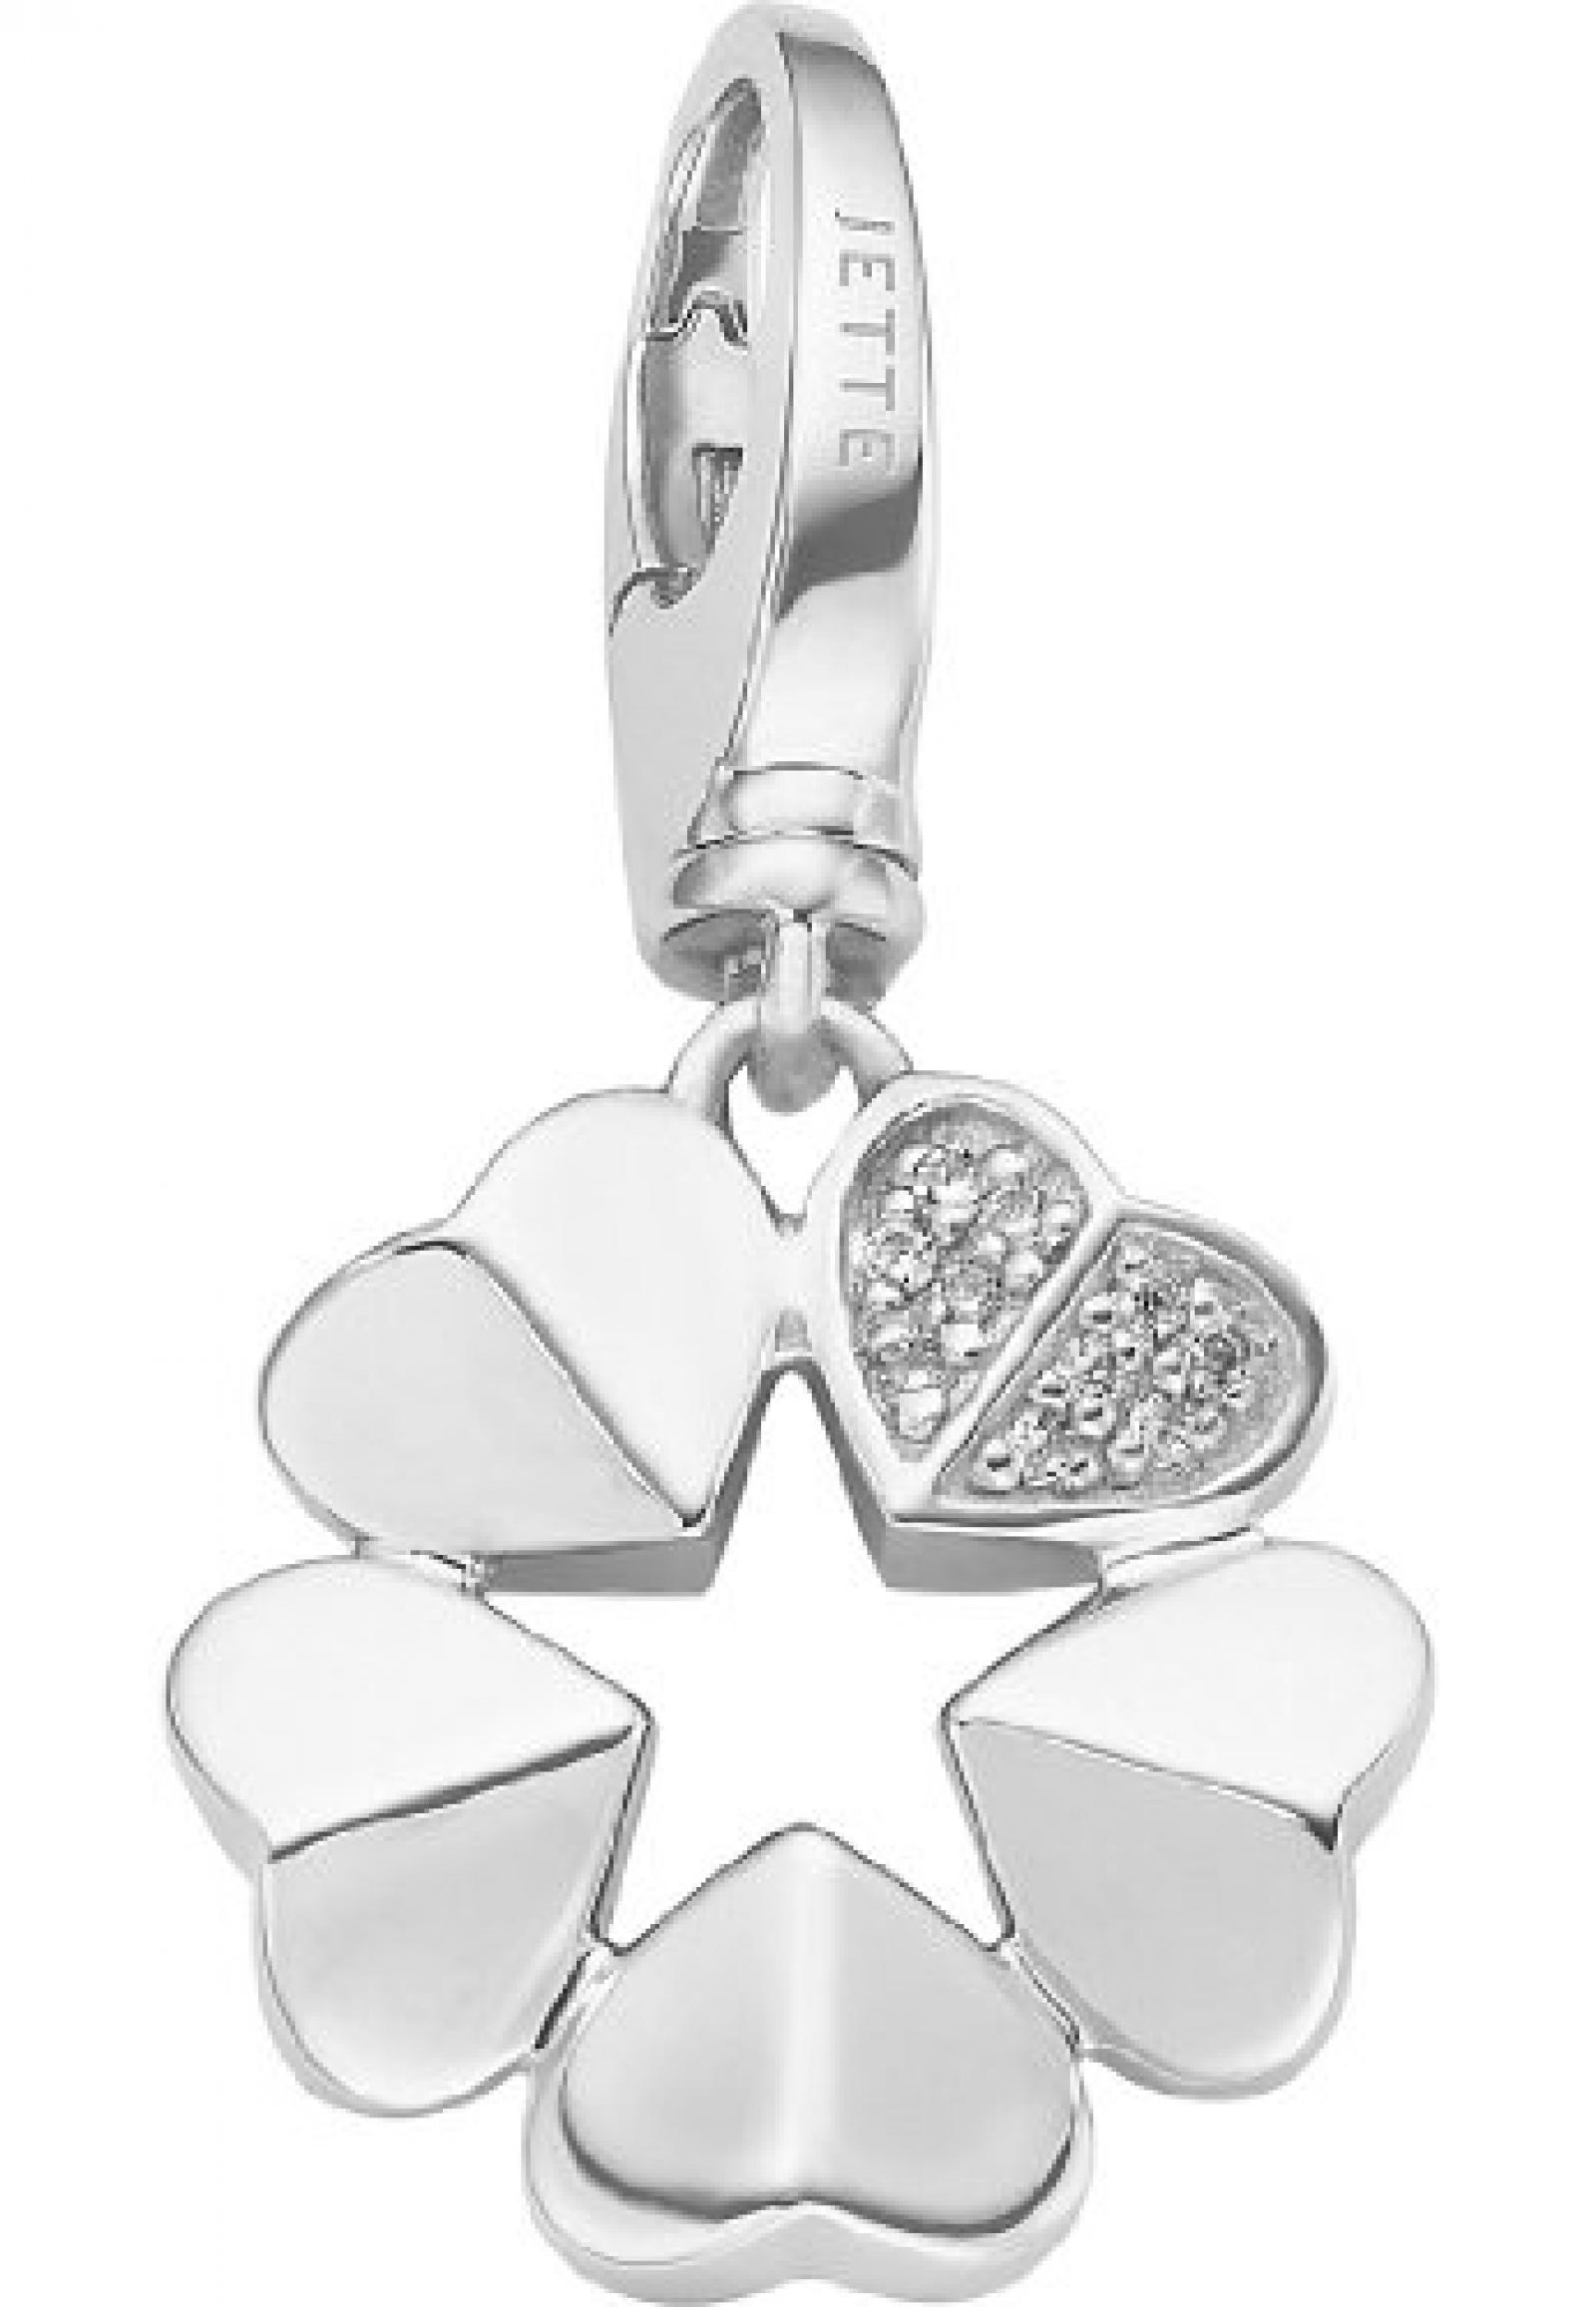 JETTE Charms Damen-Charm CHARM 925er Silber 10 Zirkonia One Size, silber